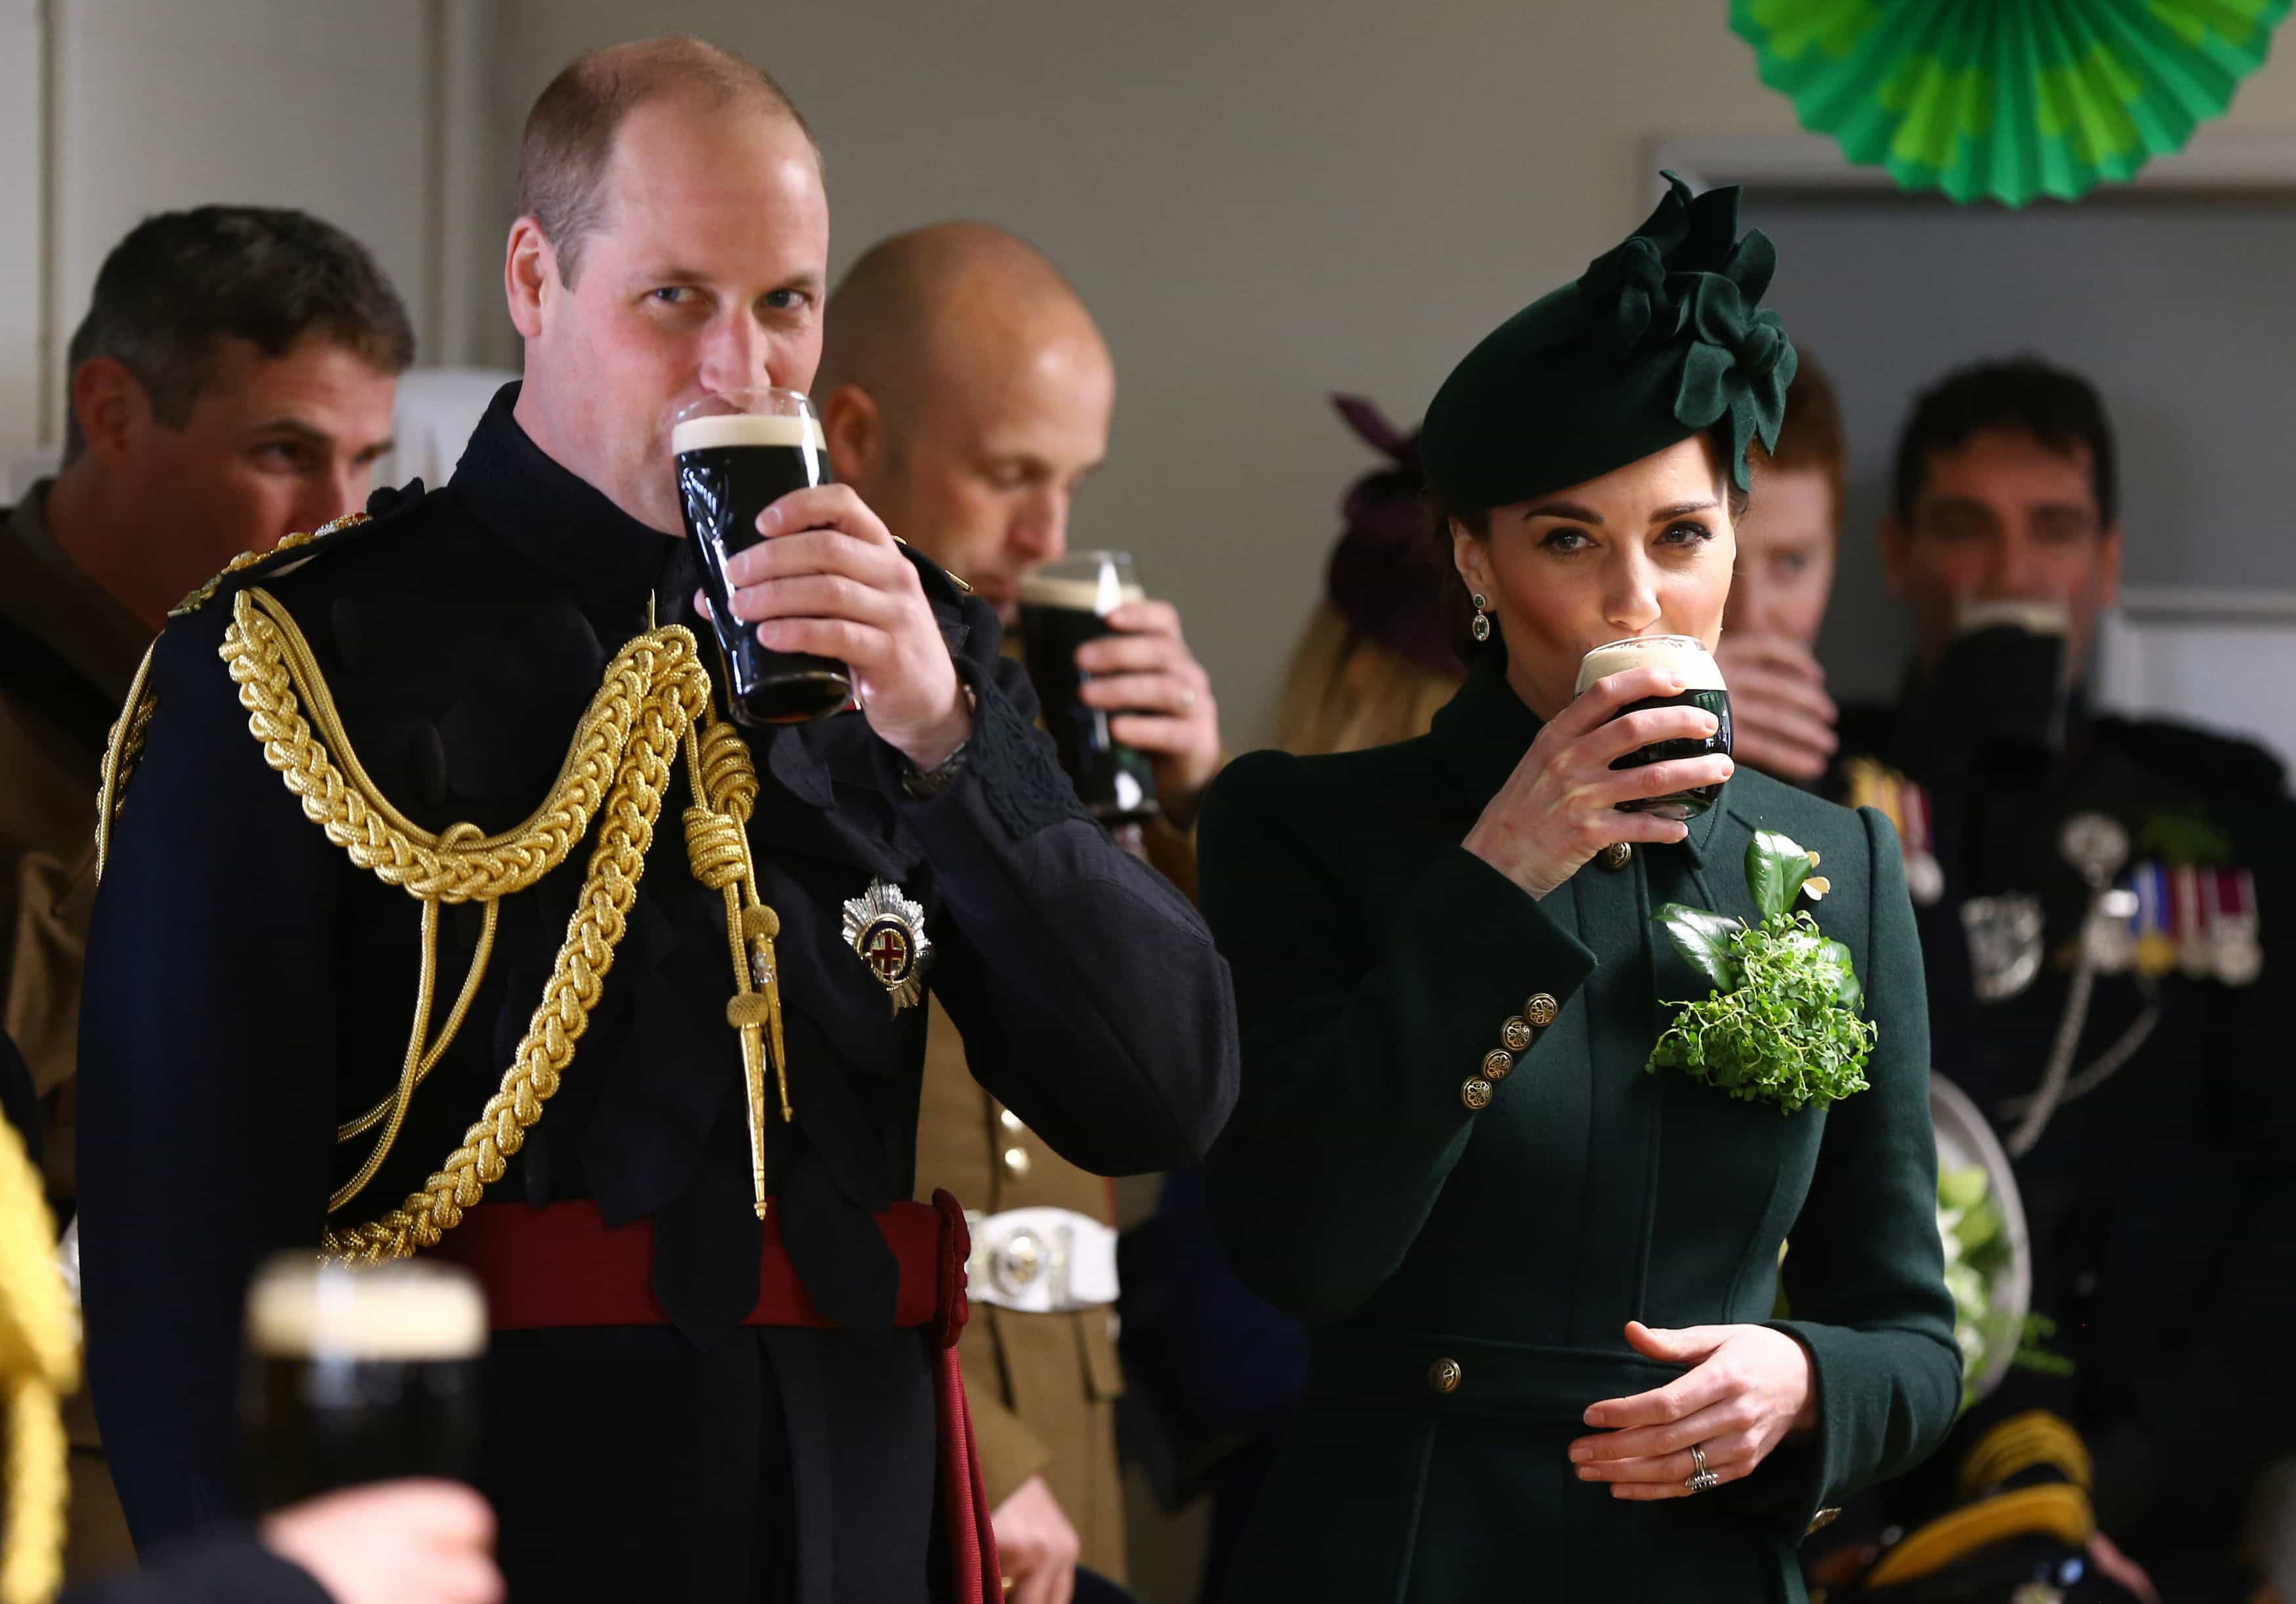 William e Kate Middleton festejam feriado nacional a beber... cerveja